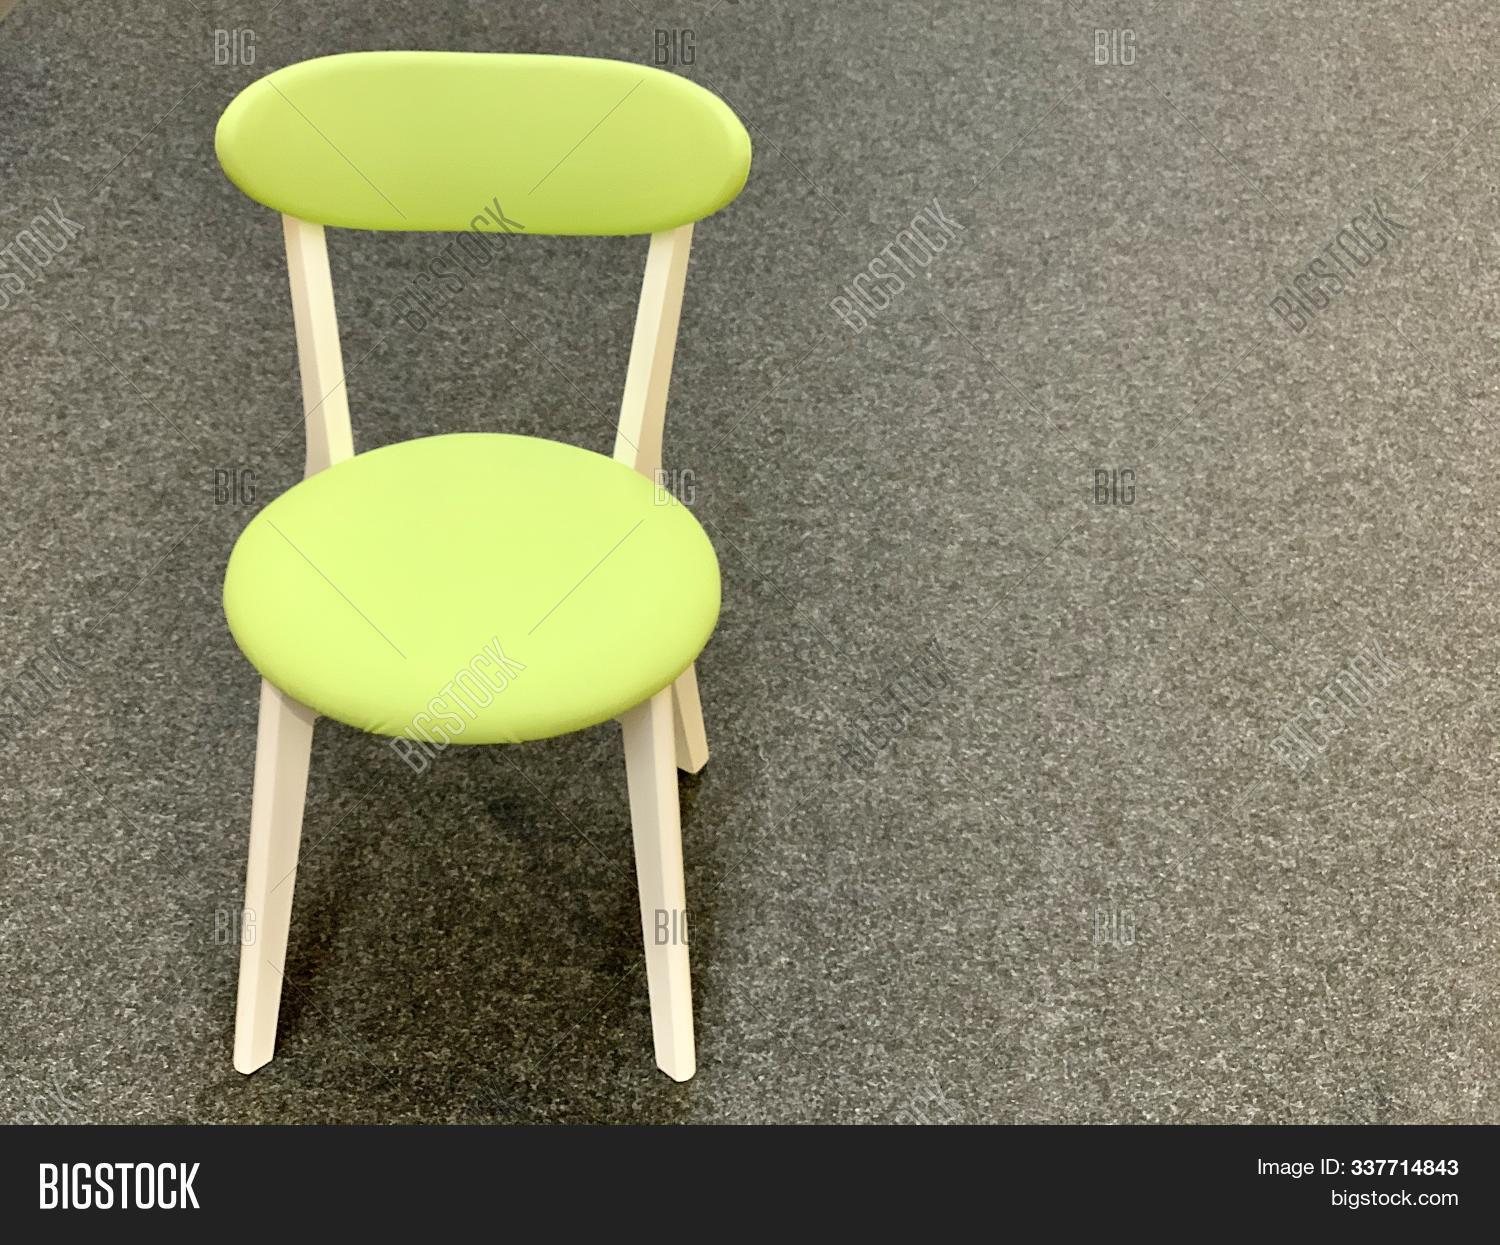 Green Chair Back On Image Photo Free Trial Bigstock